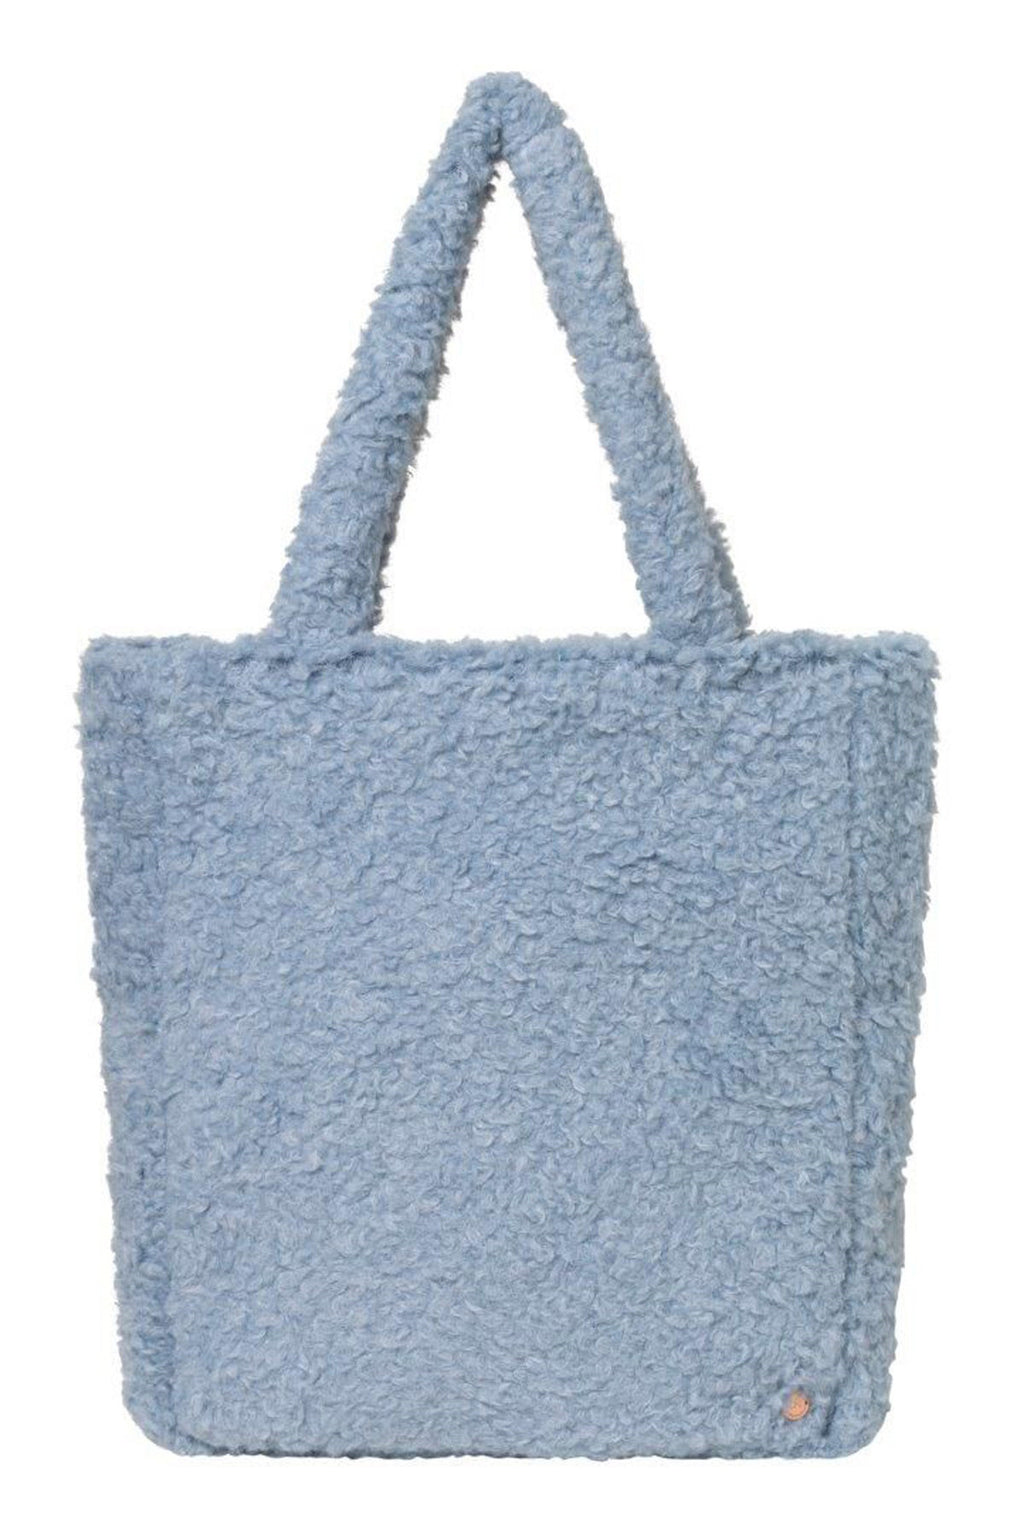 Fluffy handbag in blue